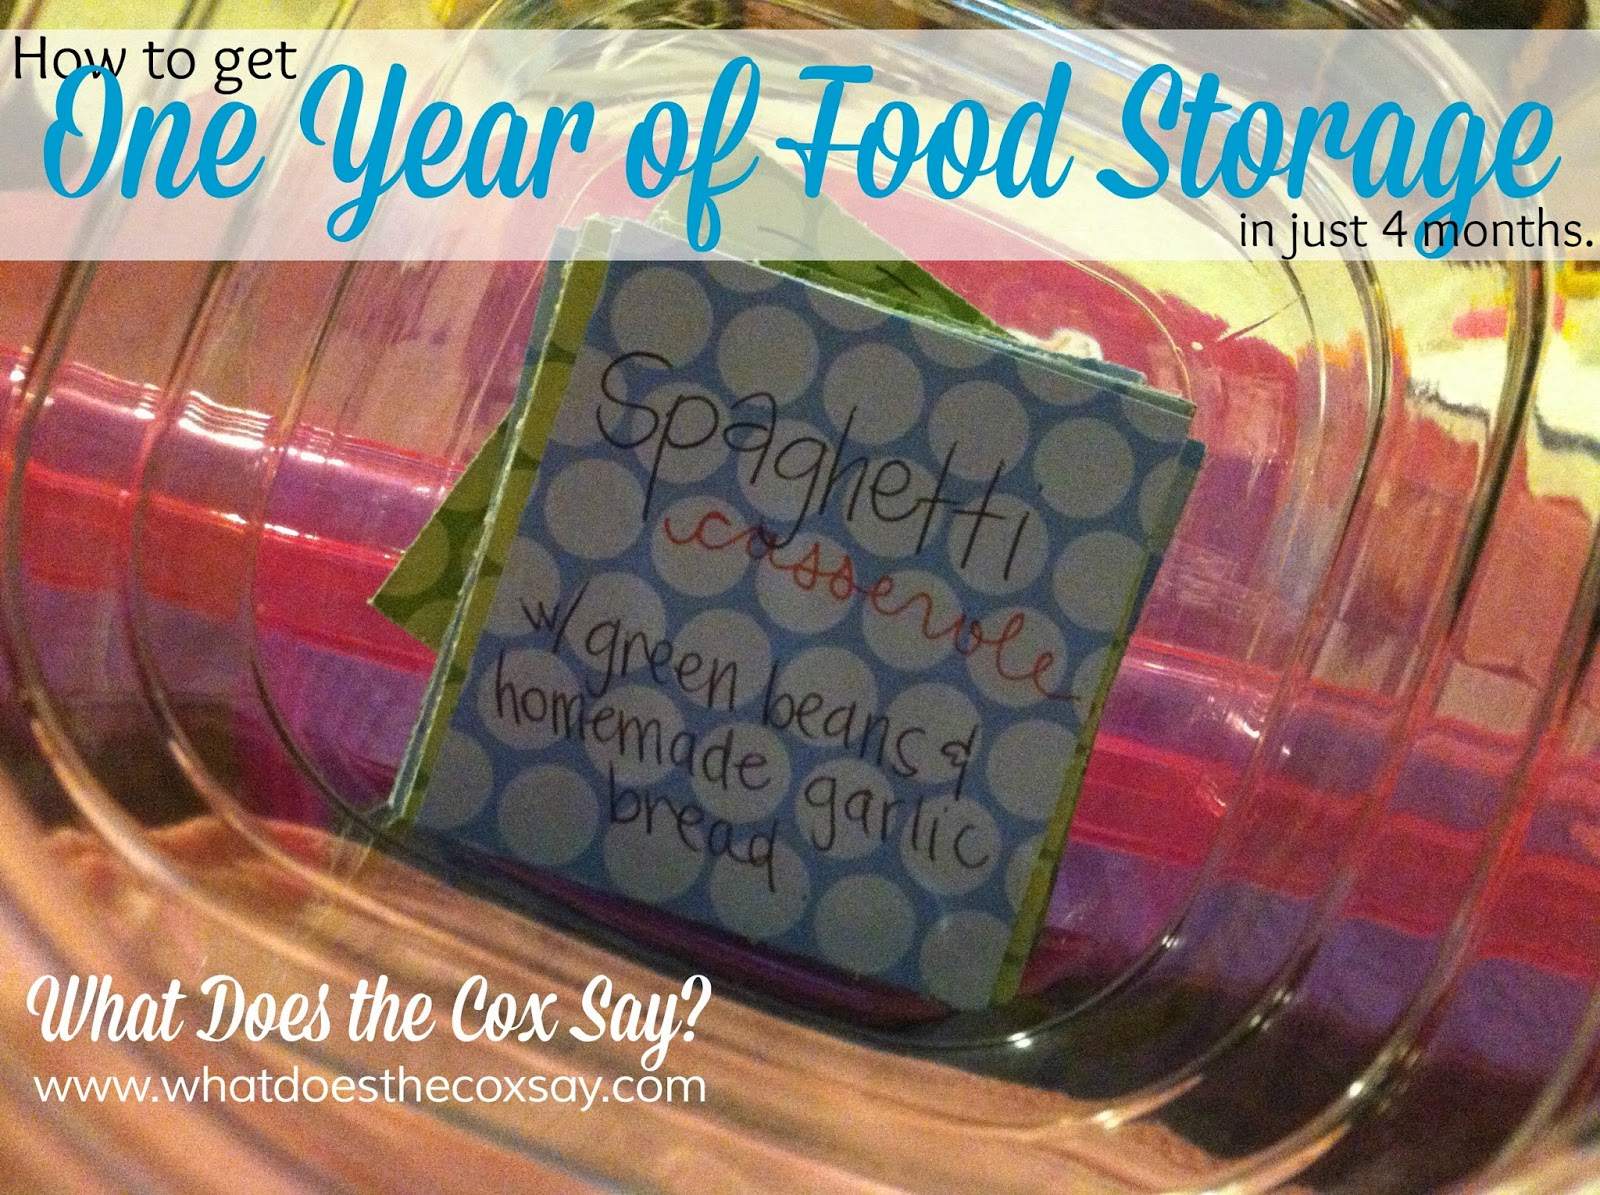 #foodstorage #whatdoesthecoxsay